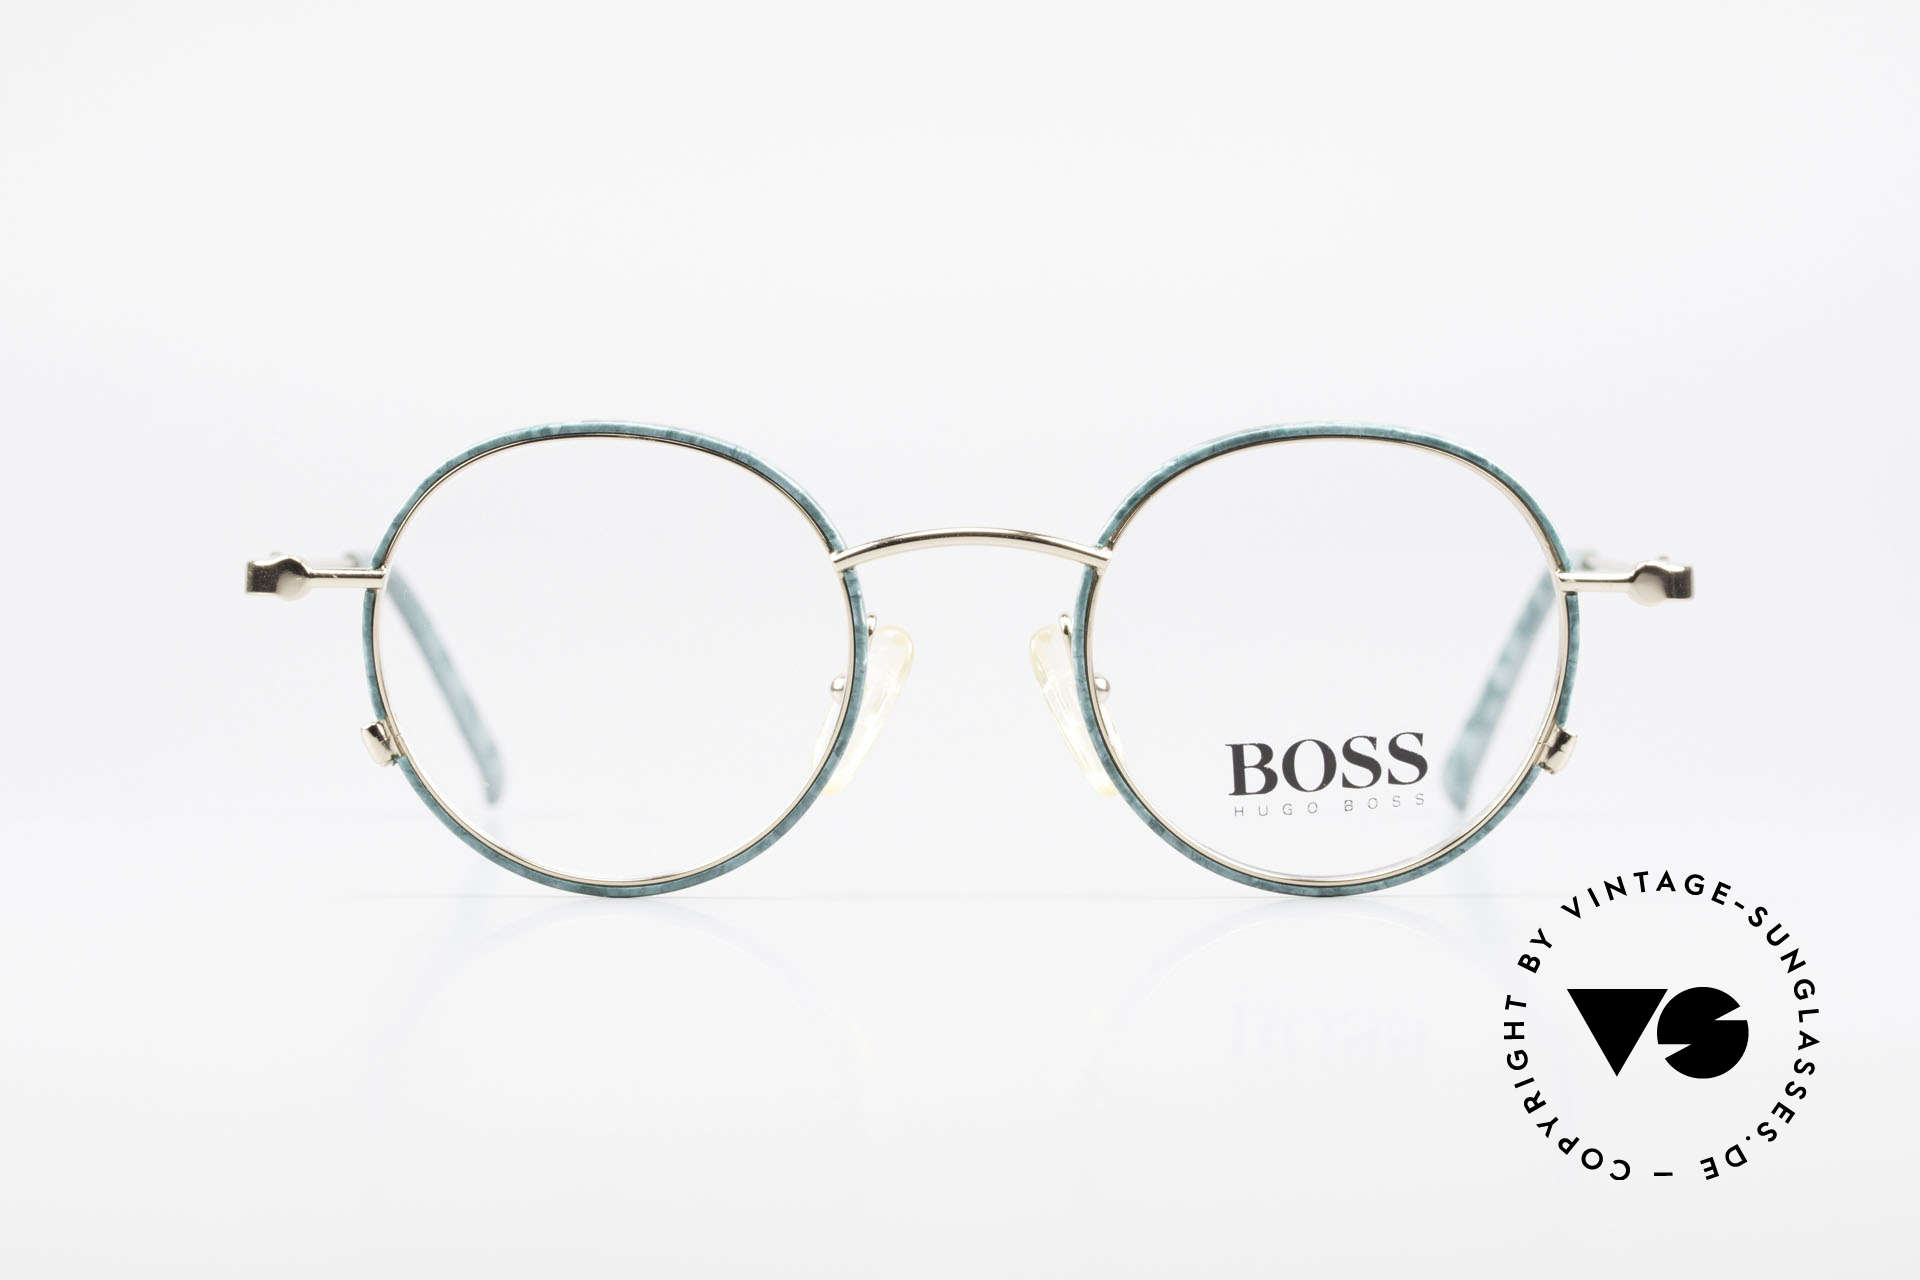 BOSS 5148 Round Panto Eyeglass Frame, grand original in premium quality; just timeless!, Made for Men and Women